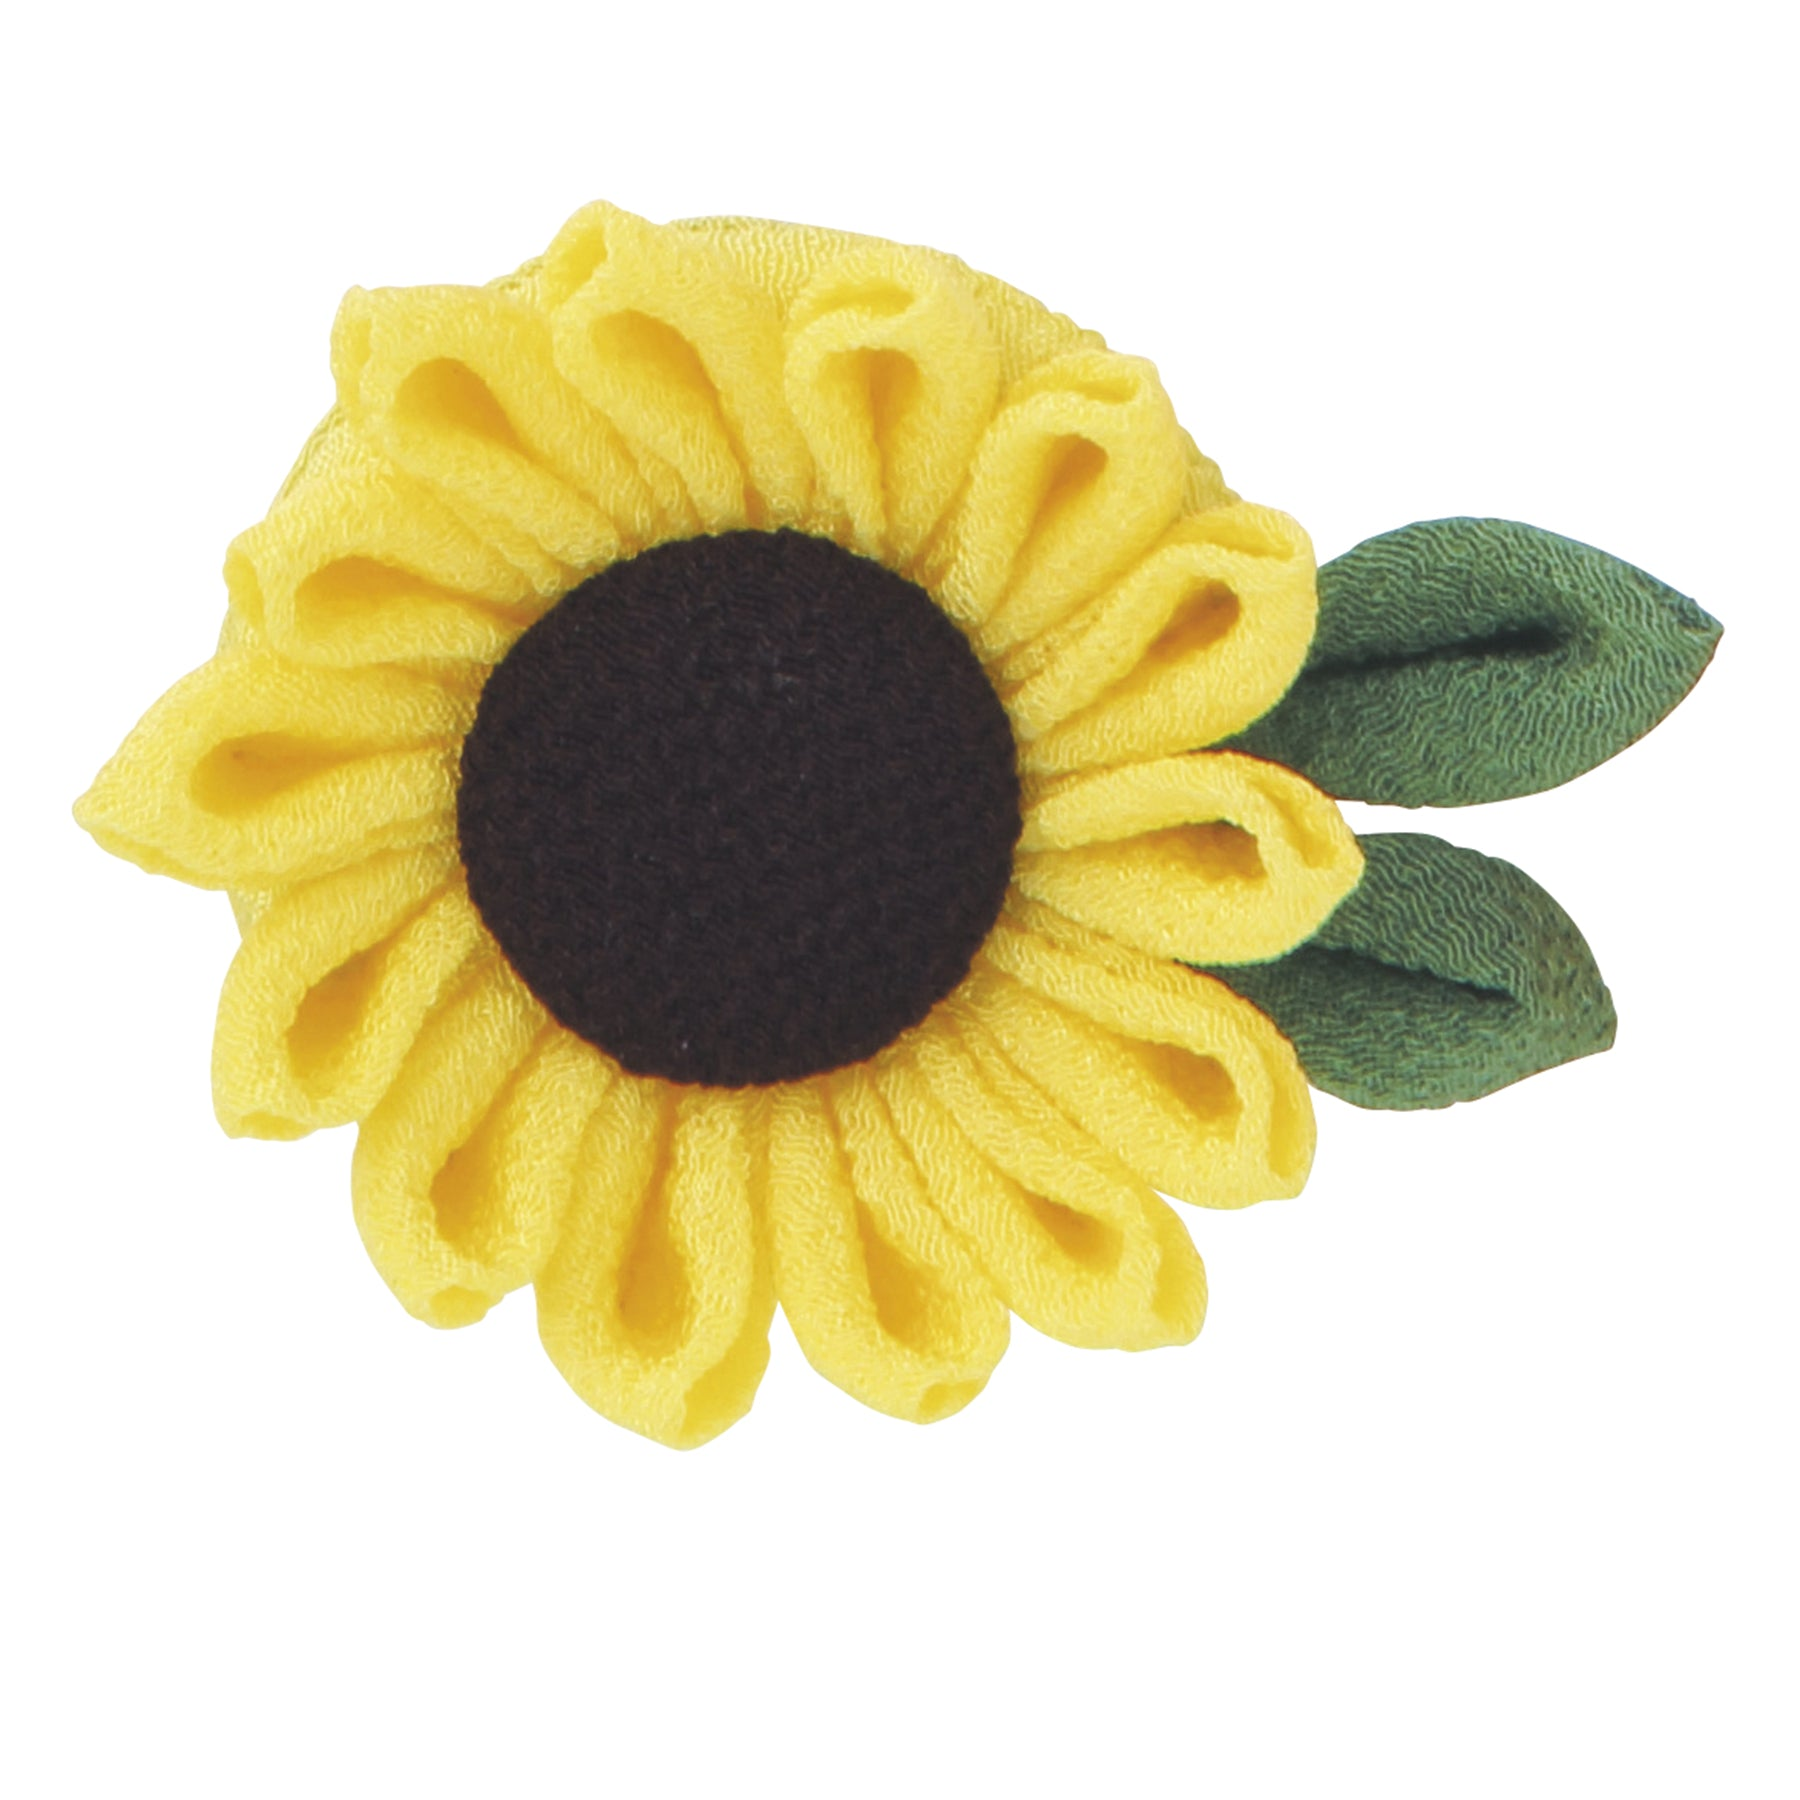 Olympus Tsumami Zaiku Flower Brooch Craft Kit  - Sunflower